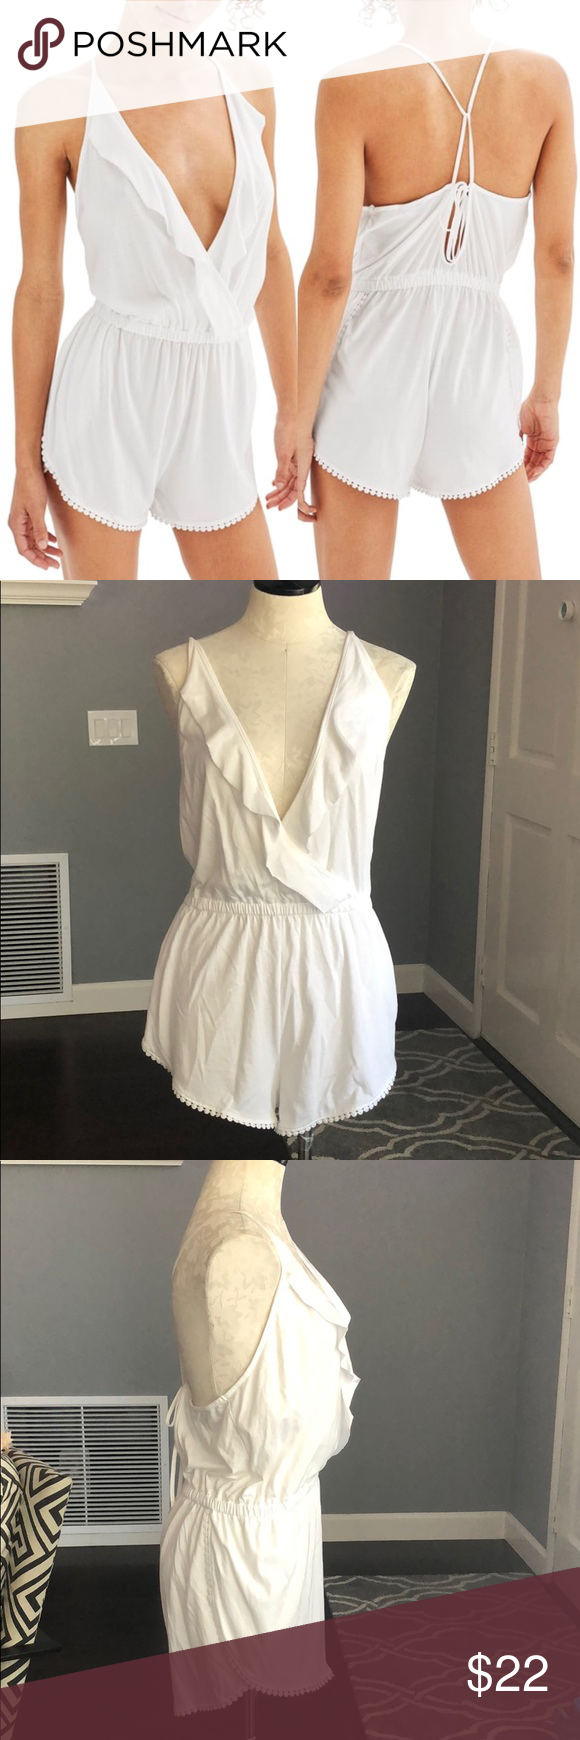 30c681735ebb Topshop Jersey Wrap Cover Up Romper New with tag. Topshop romper size US  8-10. A one-and-done post-beach outfit is made of soft